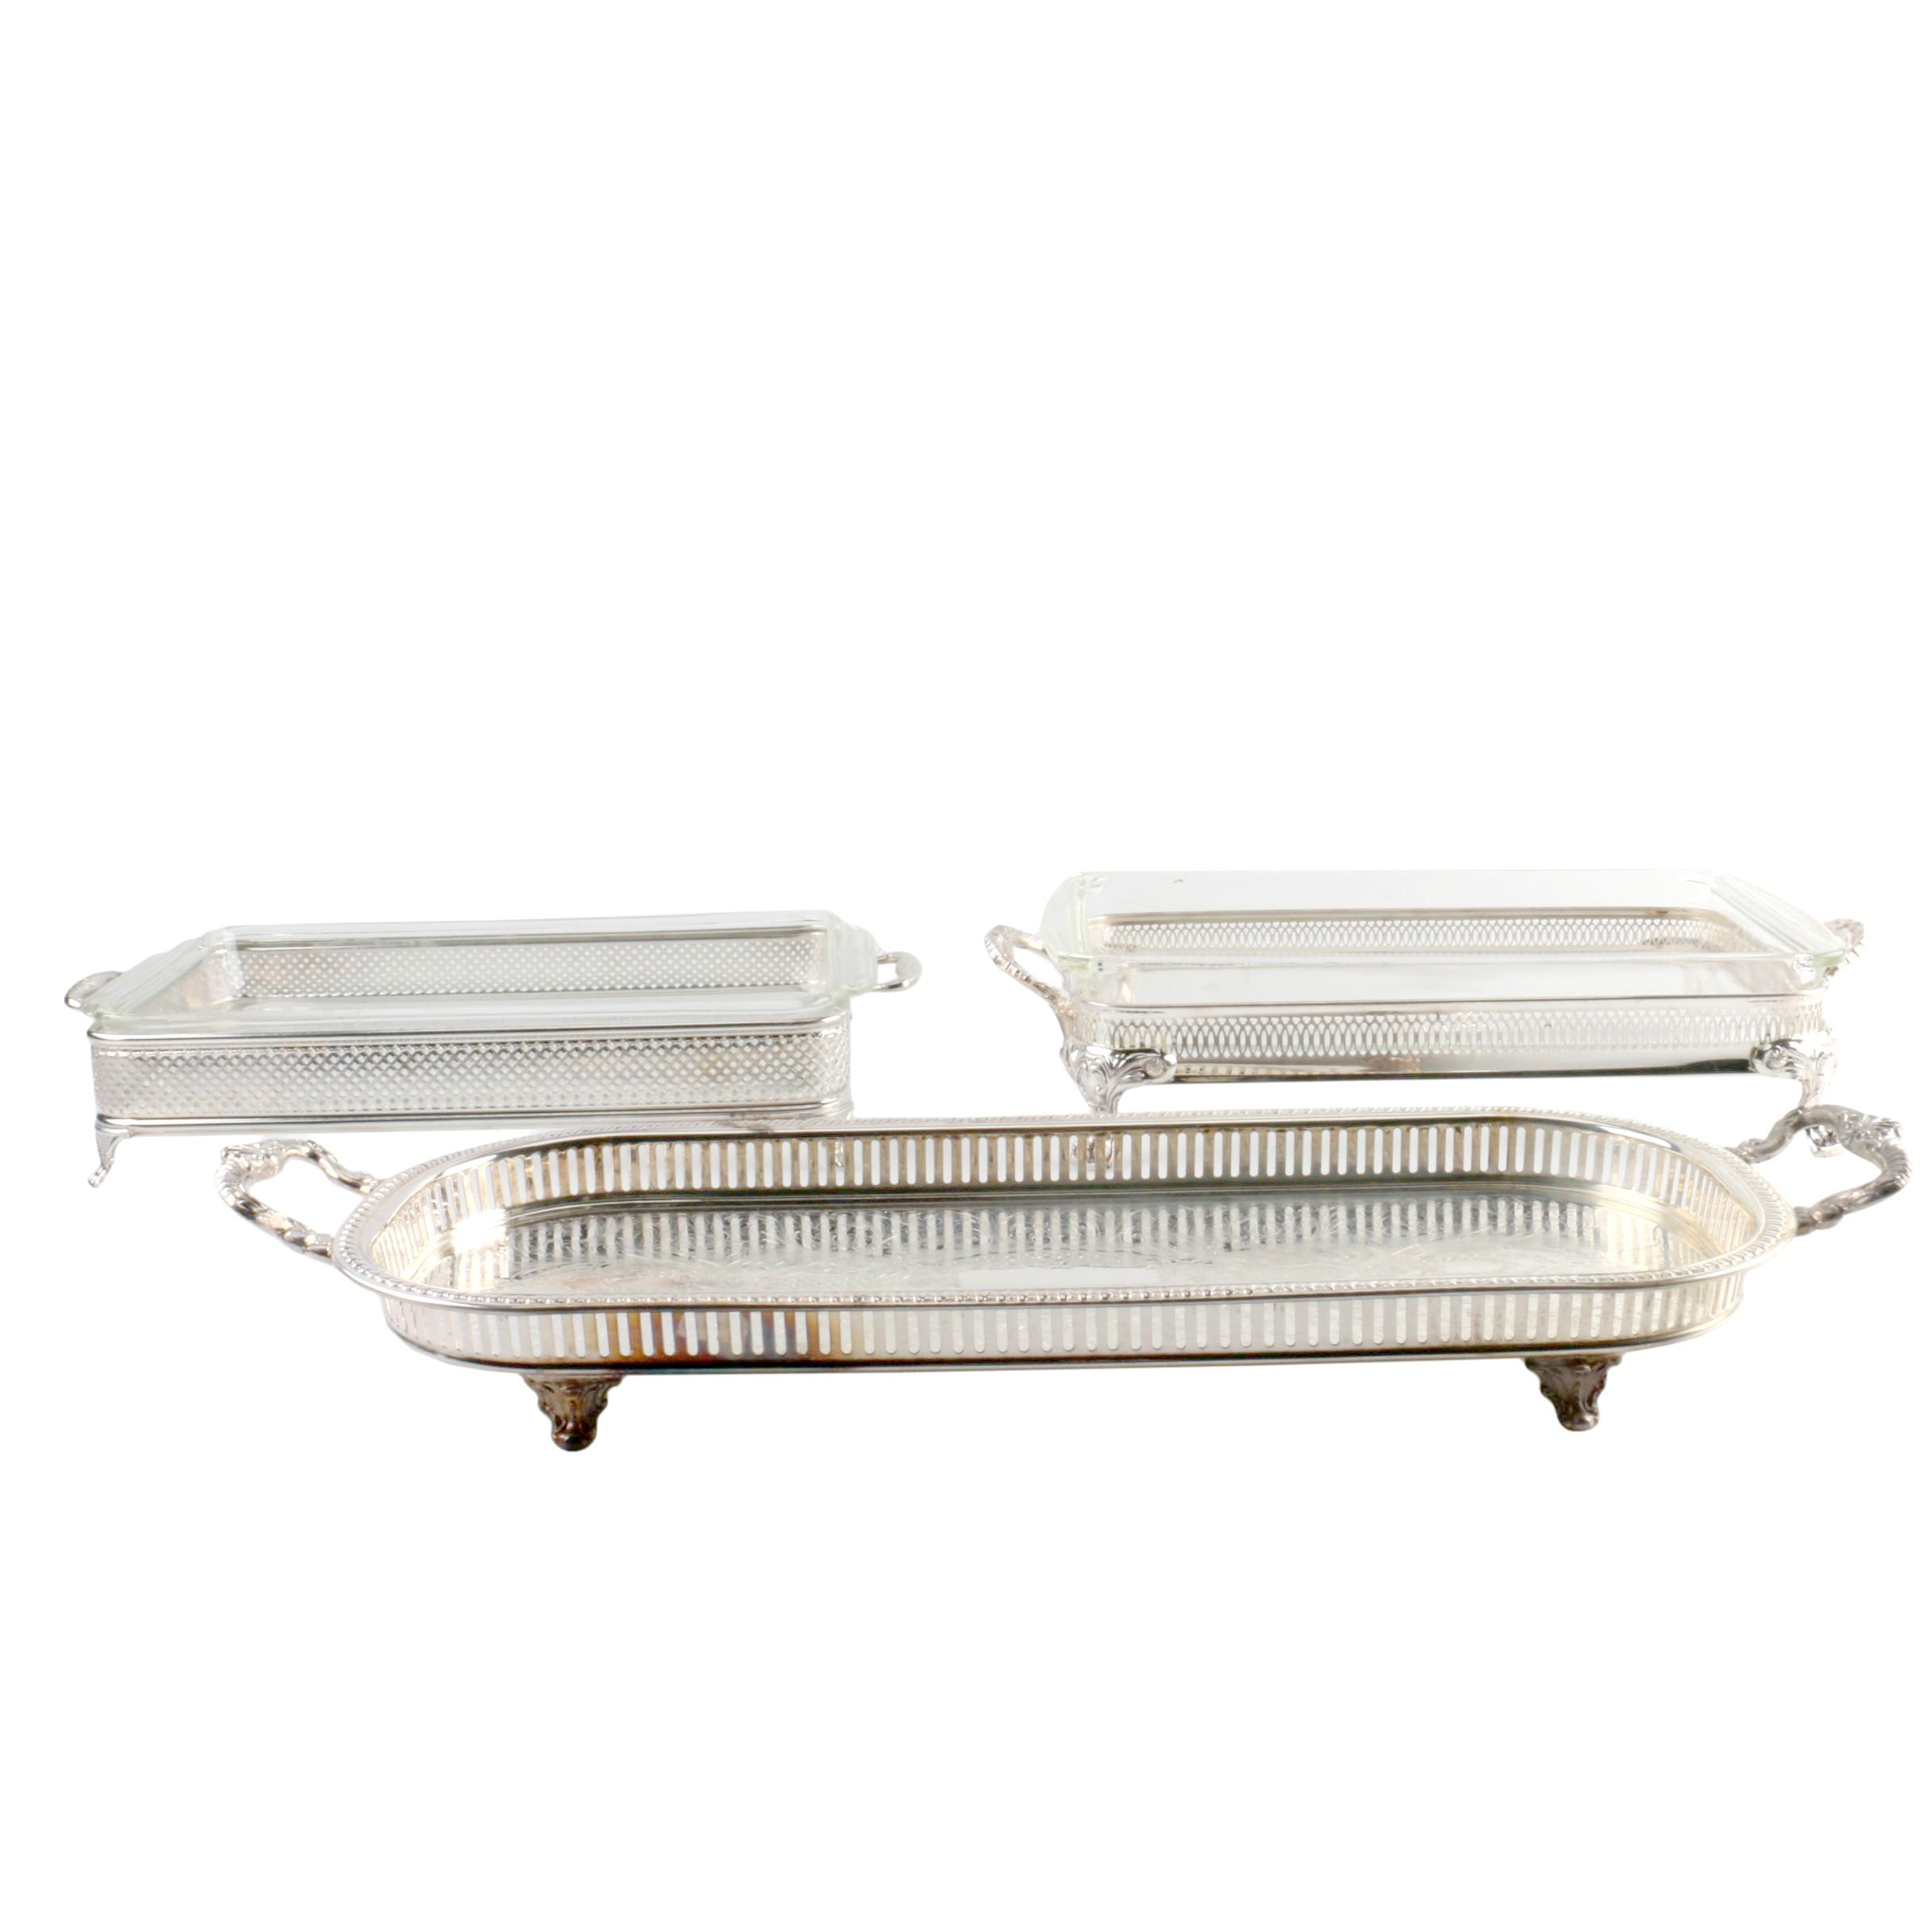 Silver Plate Buffet Servers with Glass Dishes